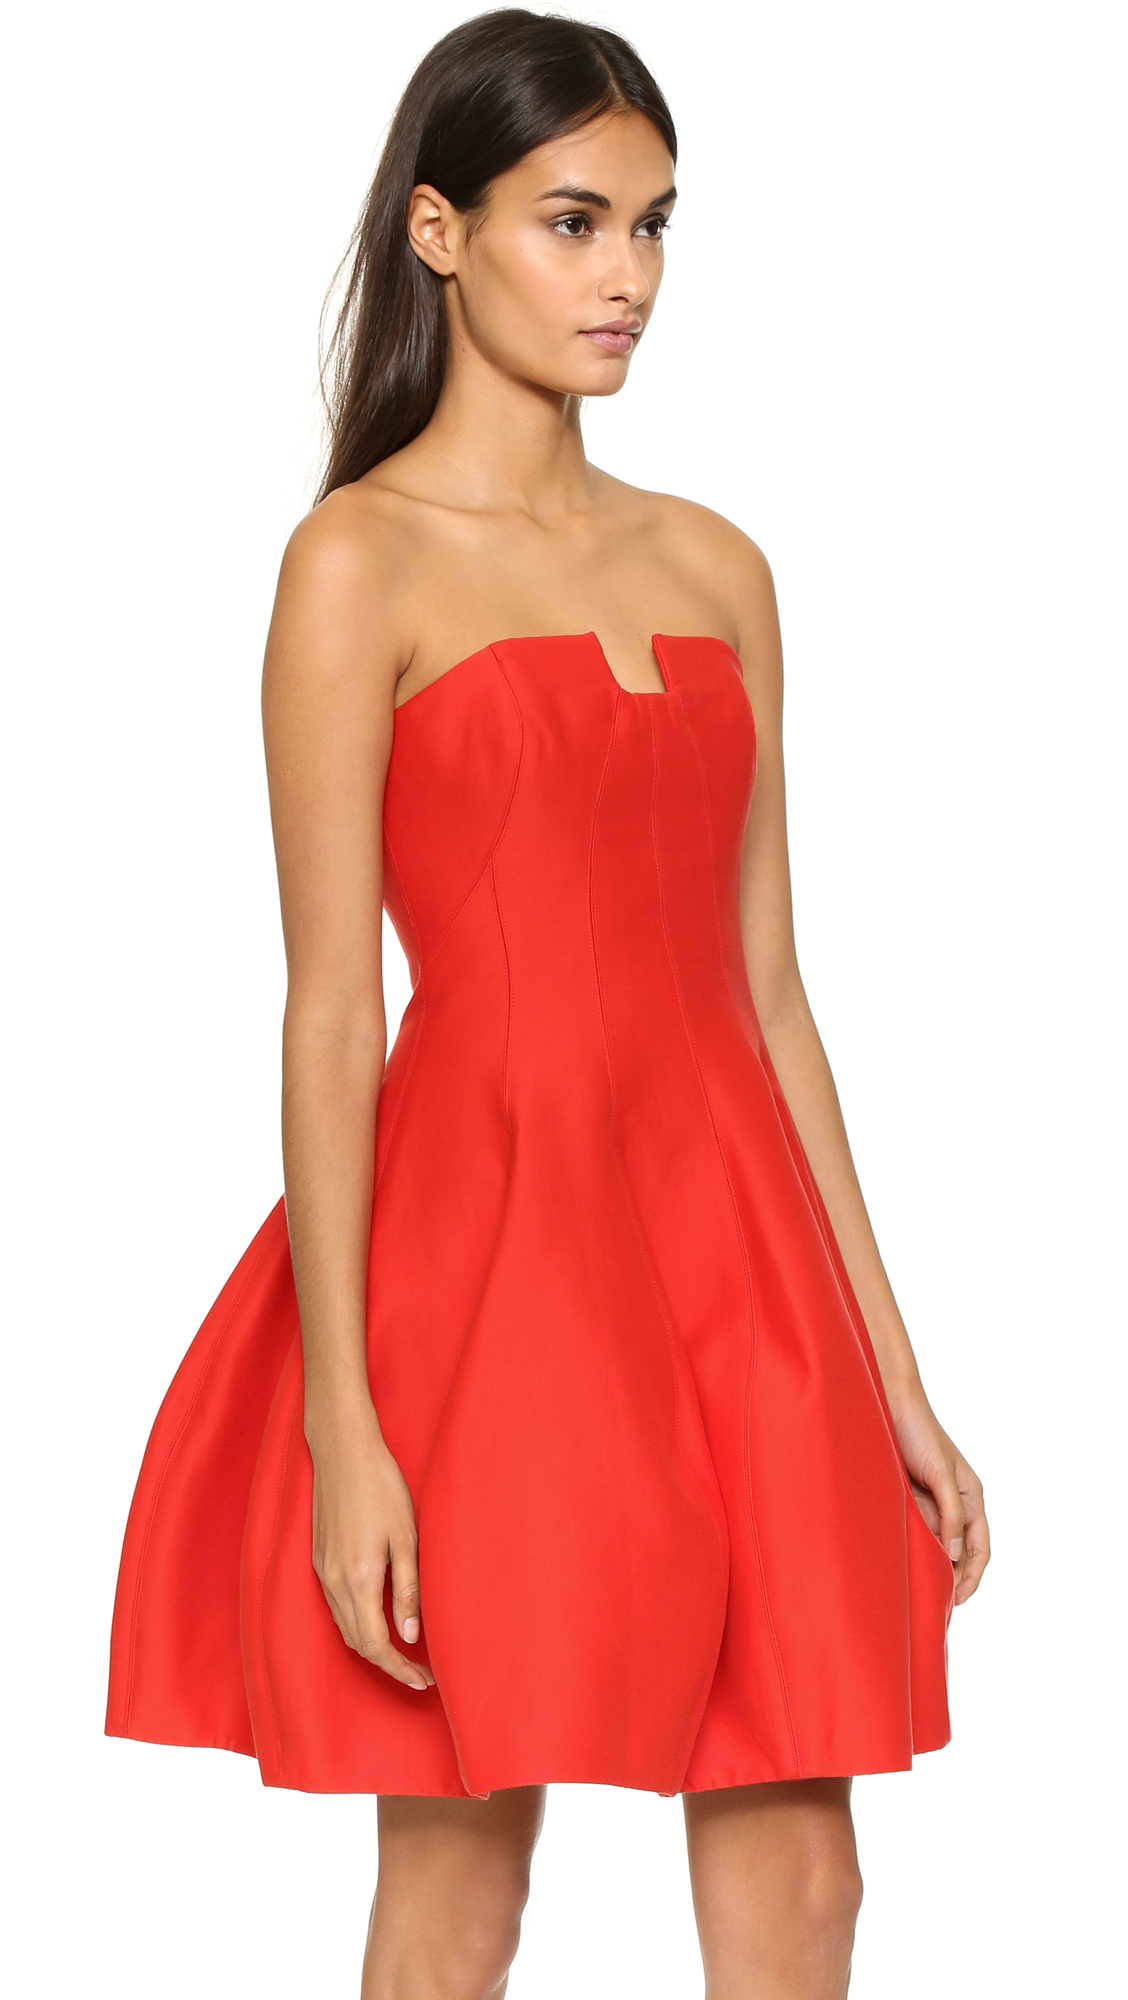 Halston Strapless Structured Dress in Red | Lyst